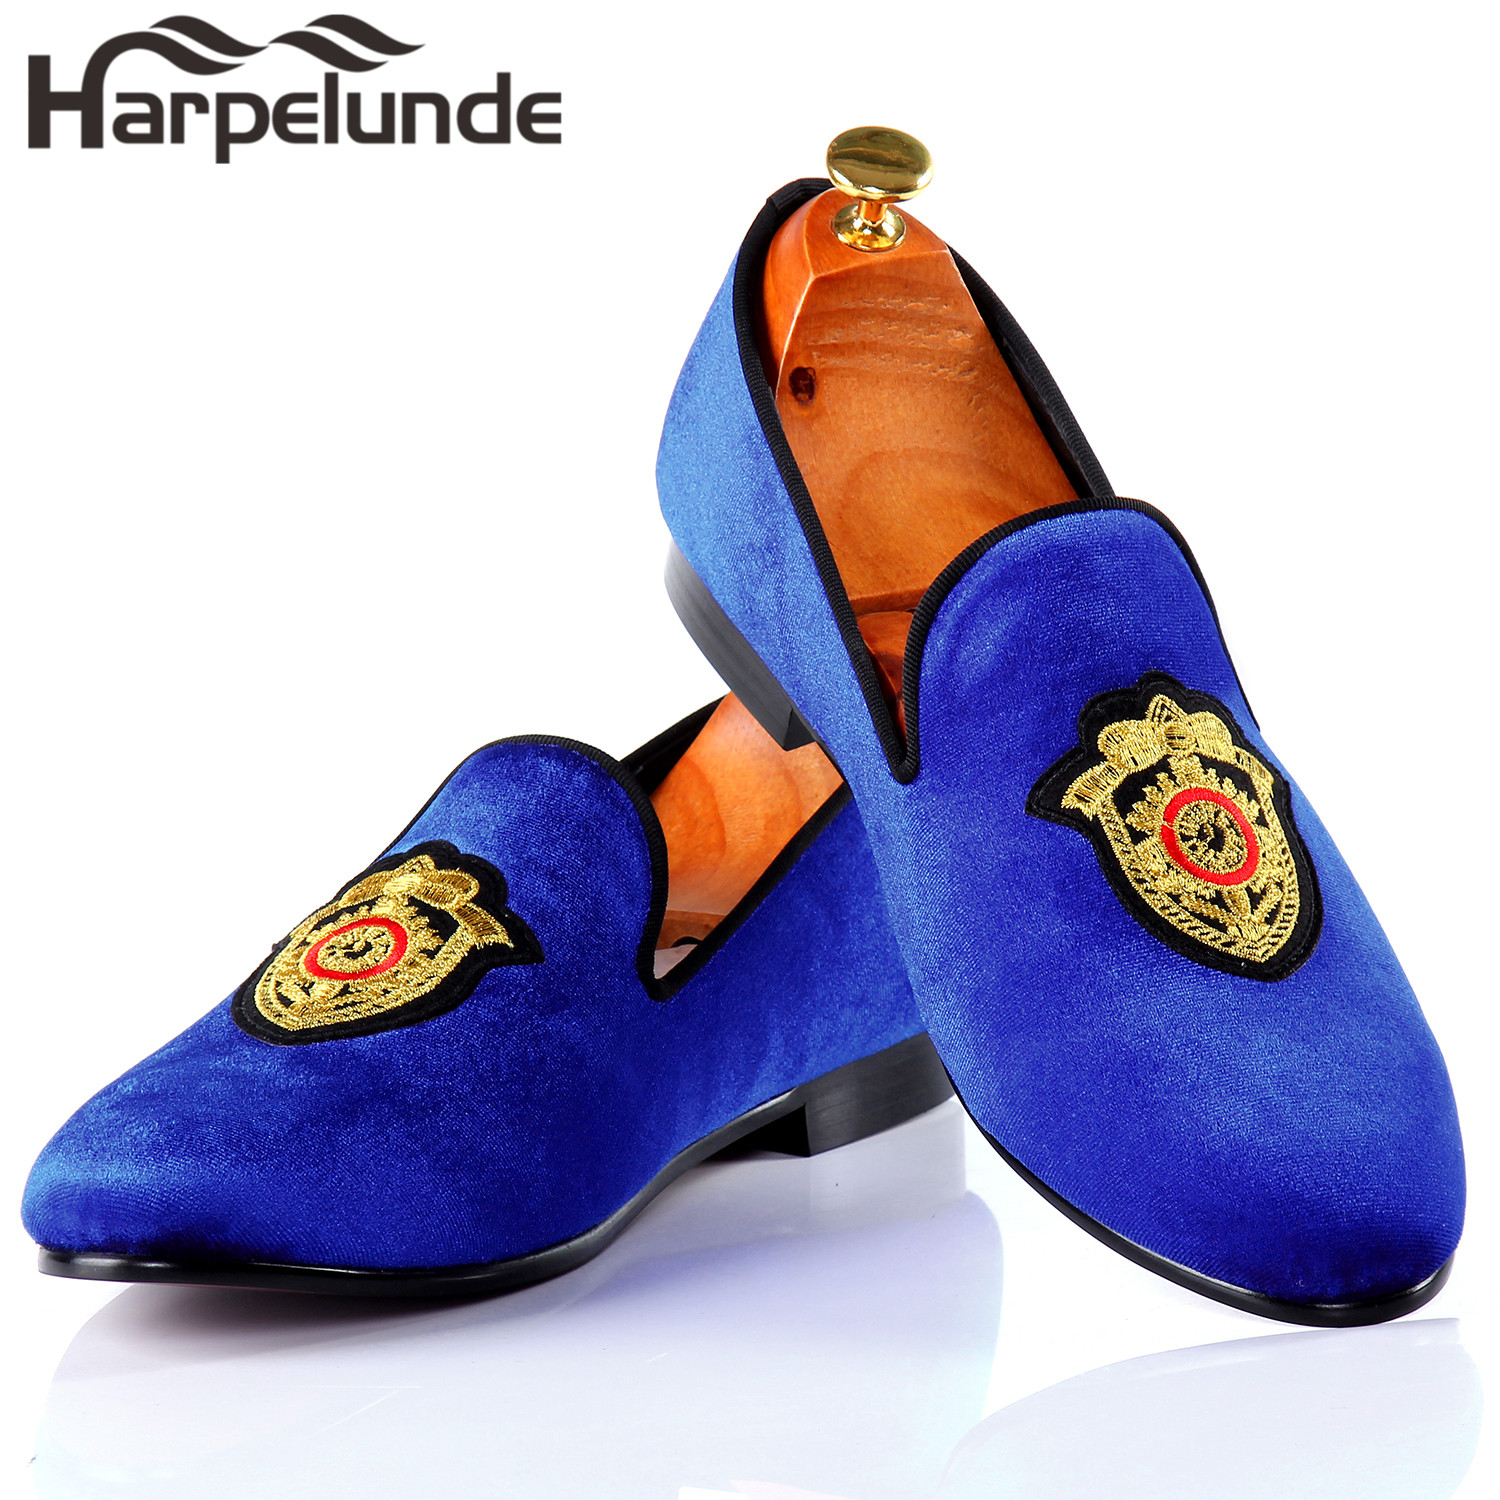 effc05fa1c04 Harpelunde Men Dress Wedding Shoes Handmade Black Velvet Flat Loafers Size  6 14-in Formal Shoes from Shoes on Aliexpress.com